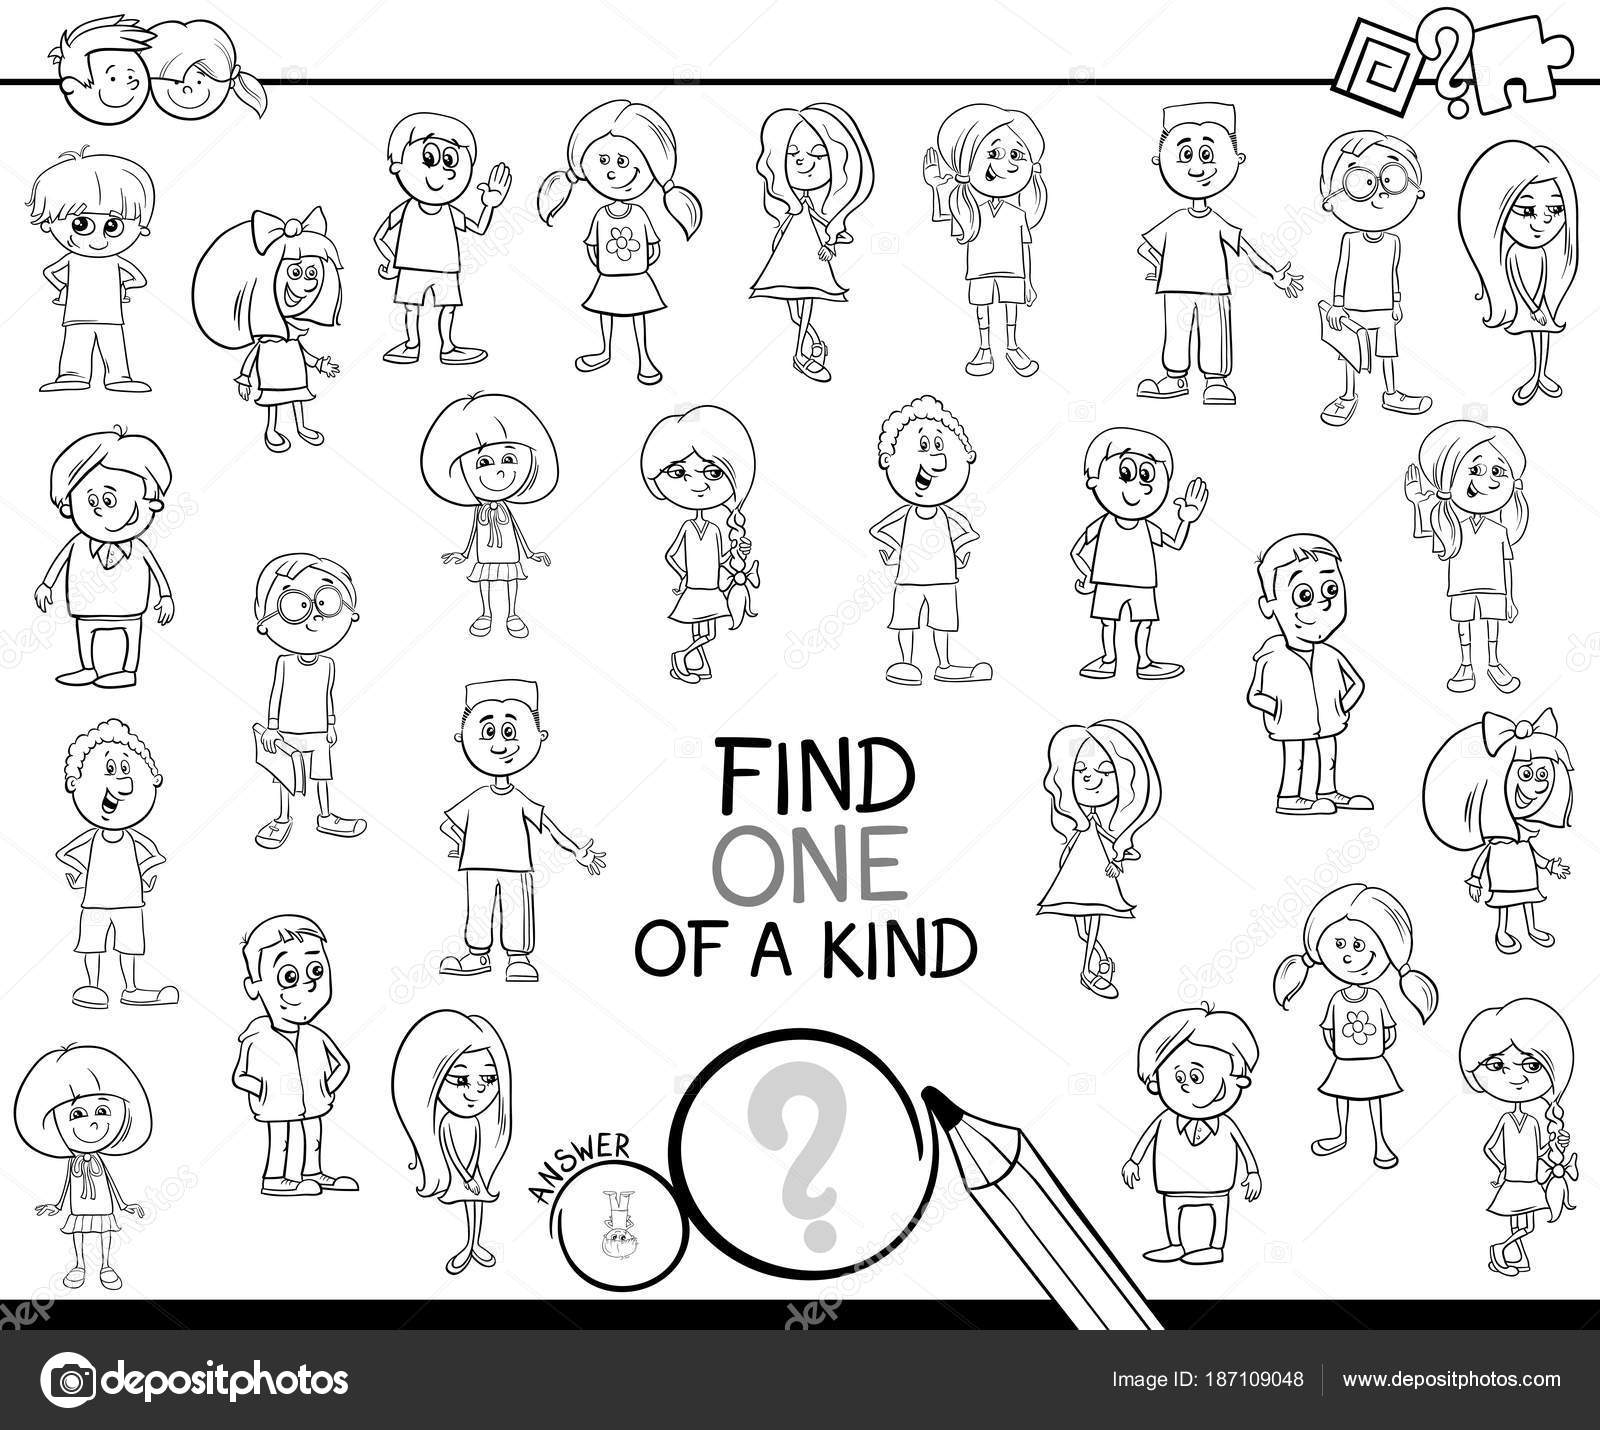 One Of A Kind Game With Children Coloring Page Stock Vector